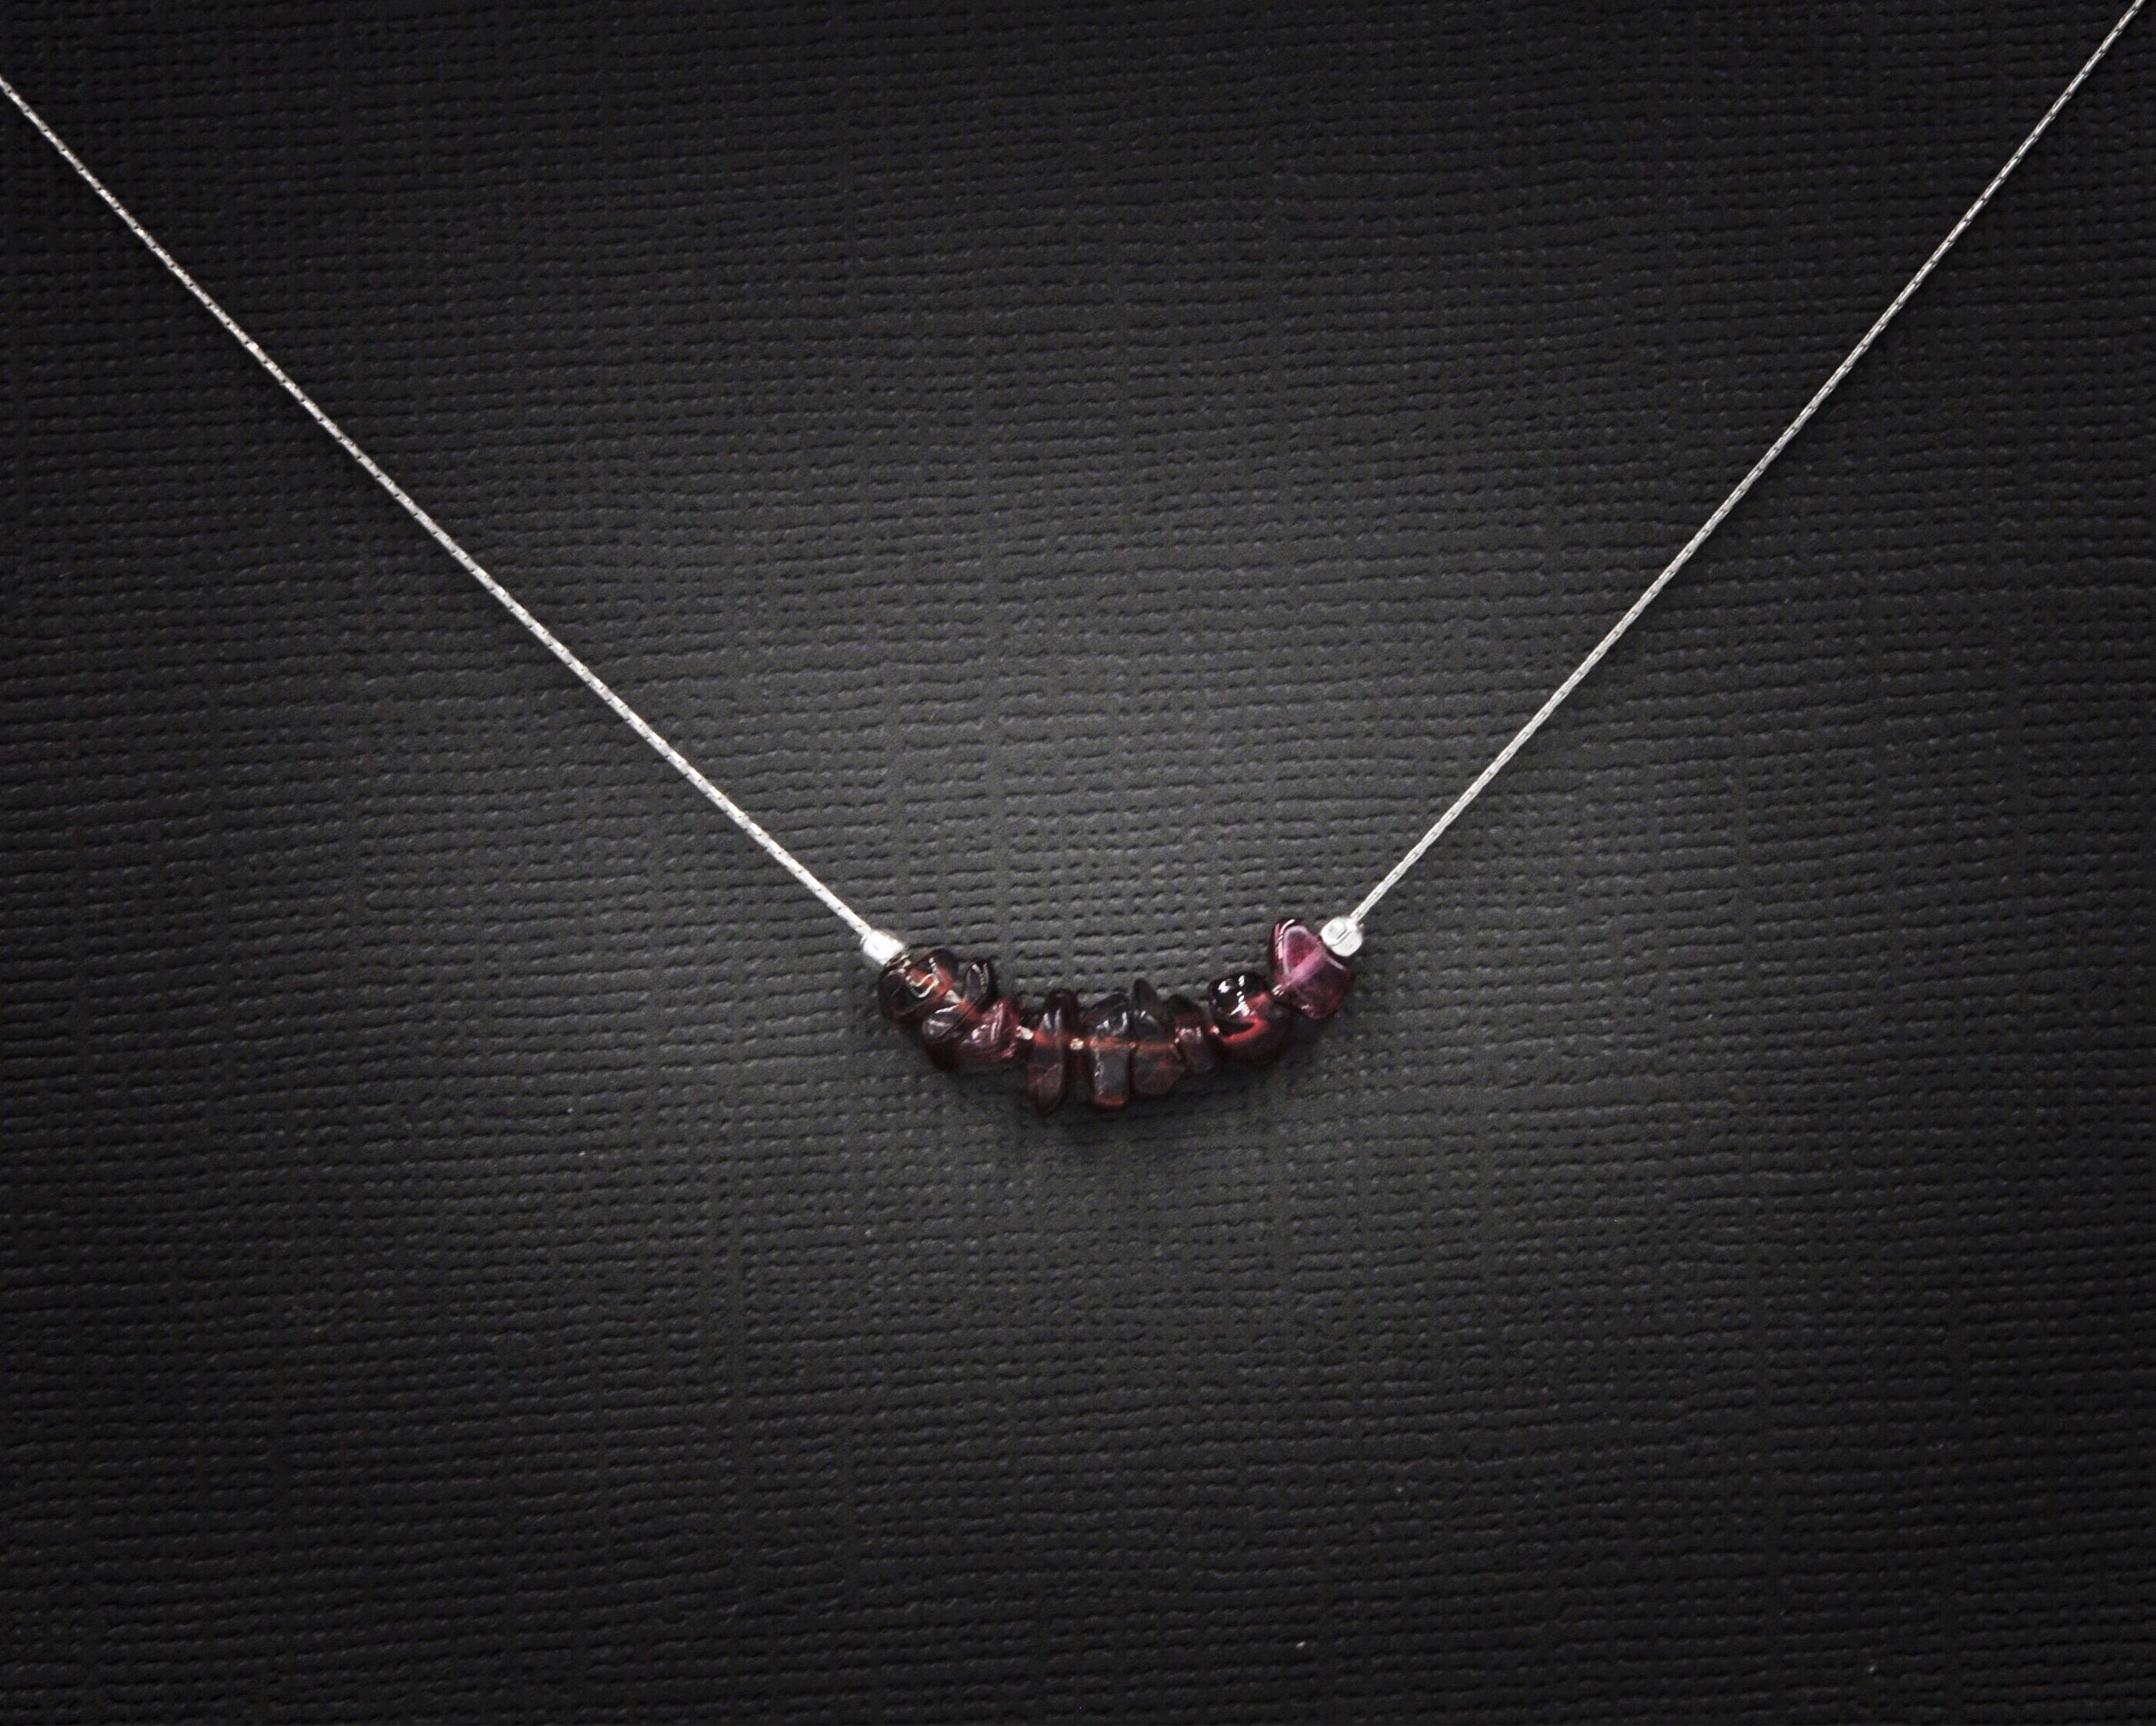 garnet in diamond red created pendant sterling silver w heart products necklace